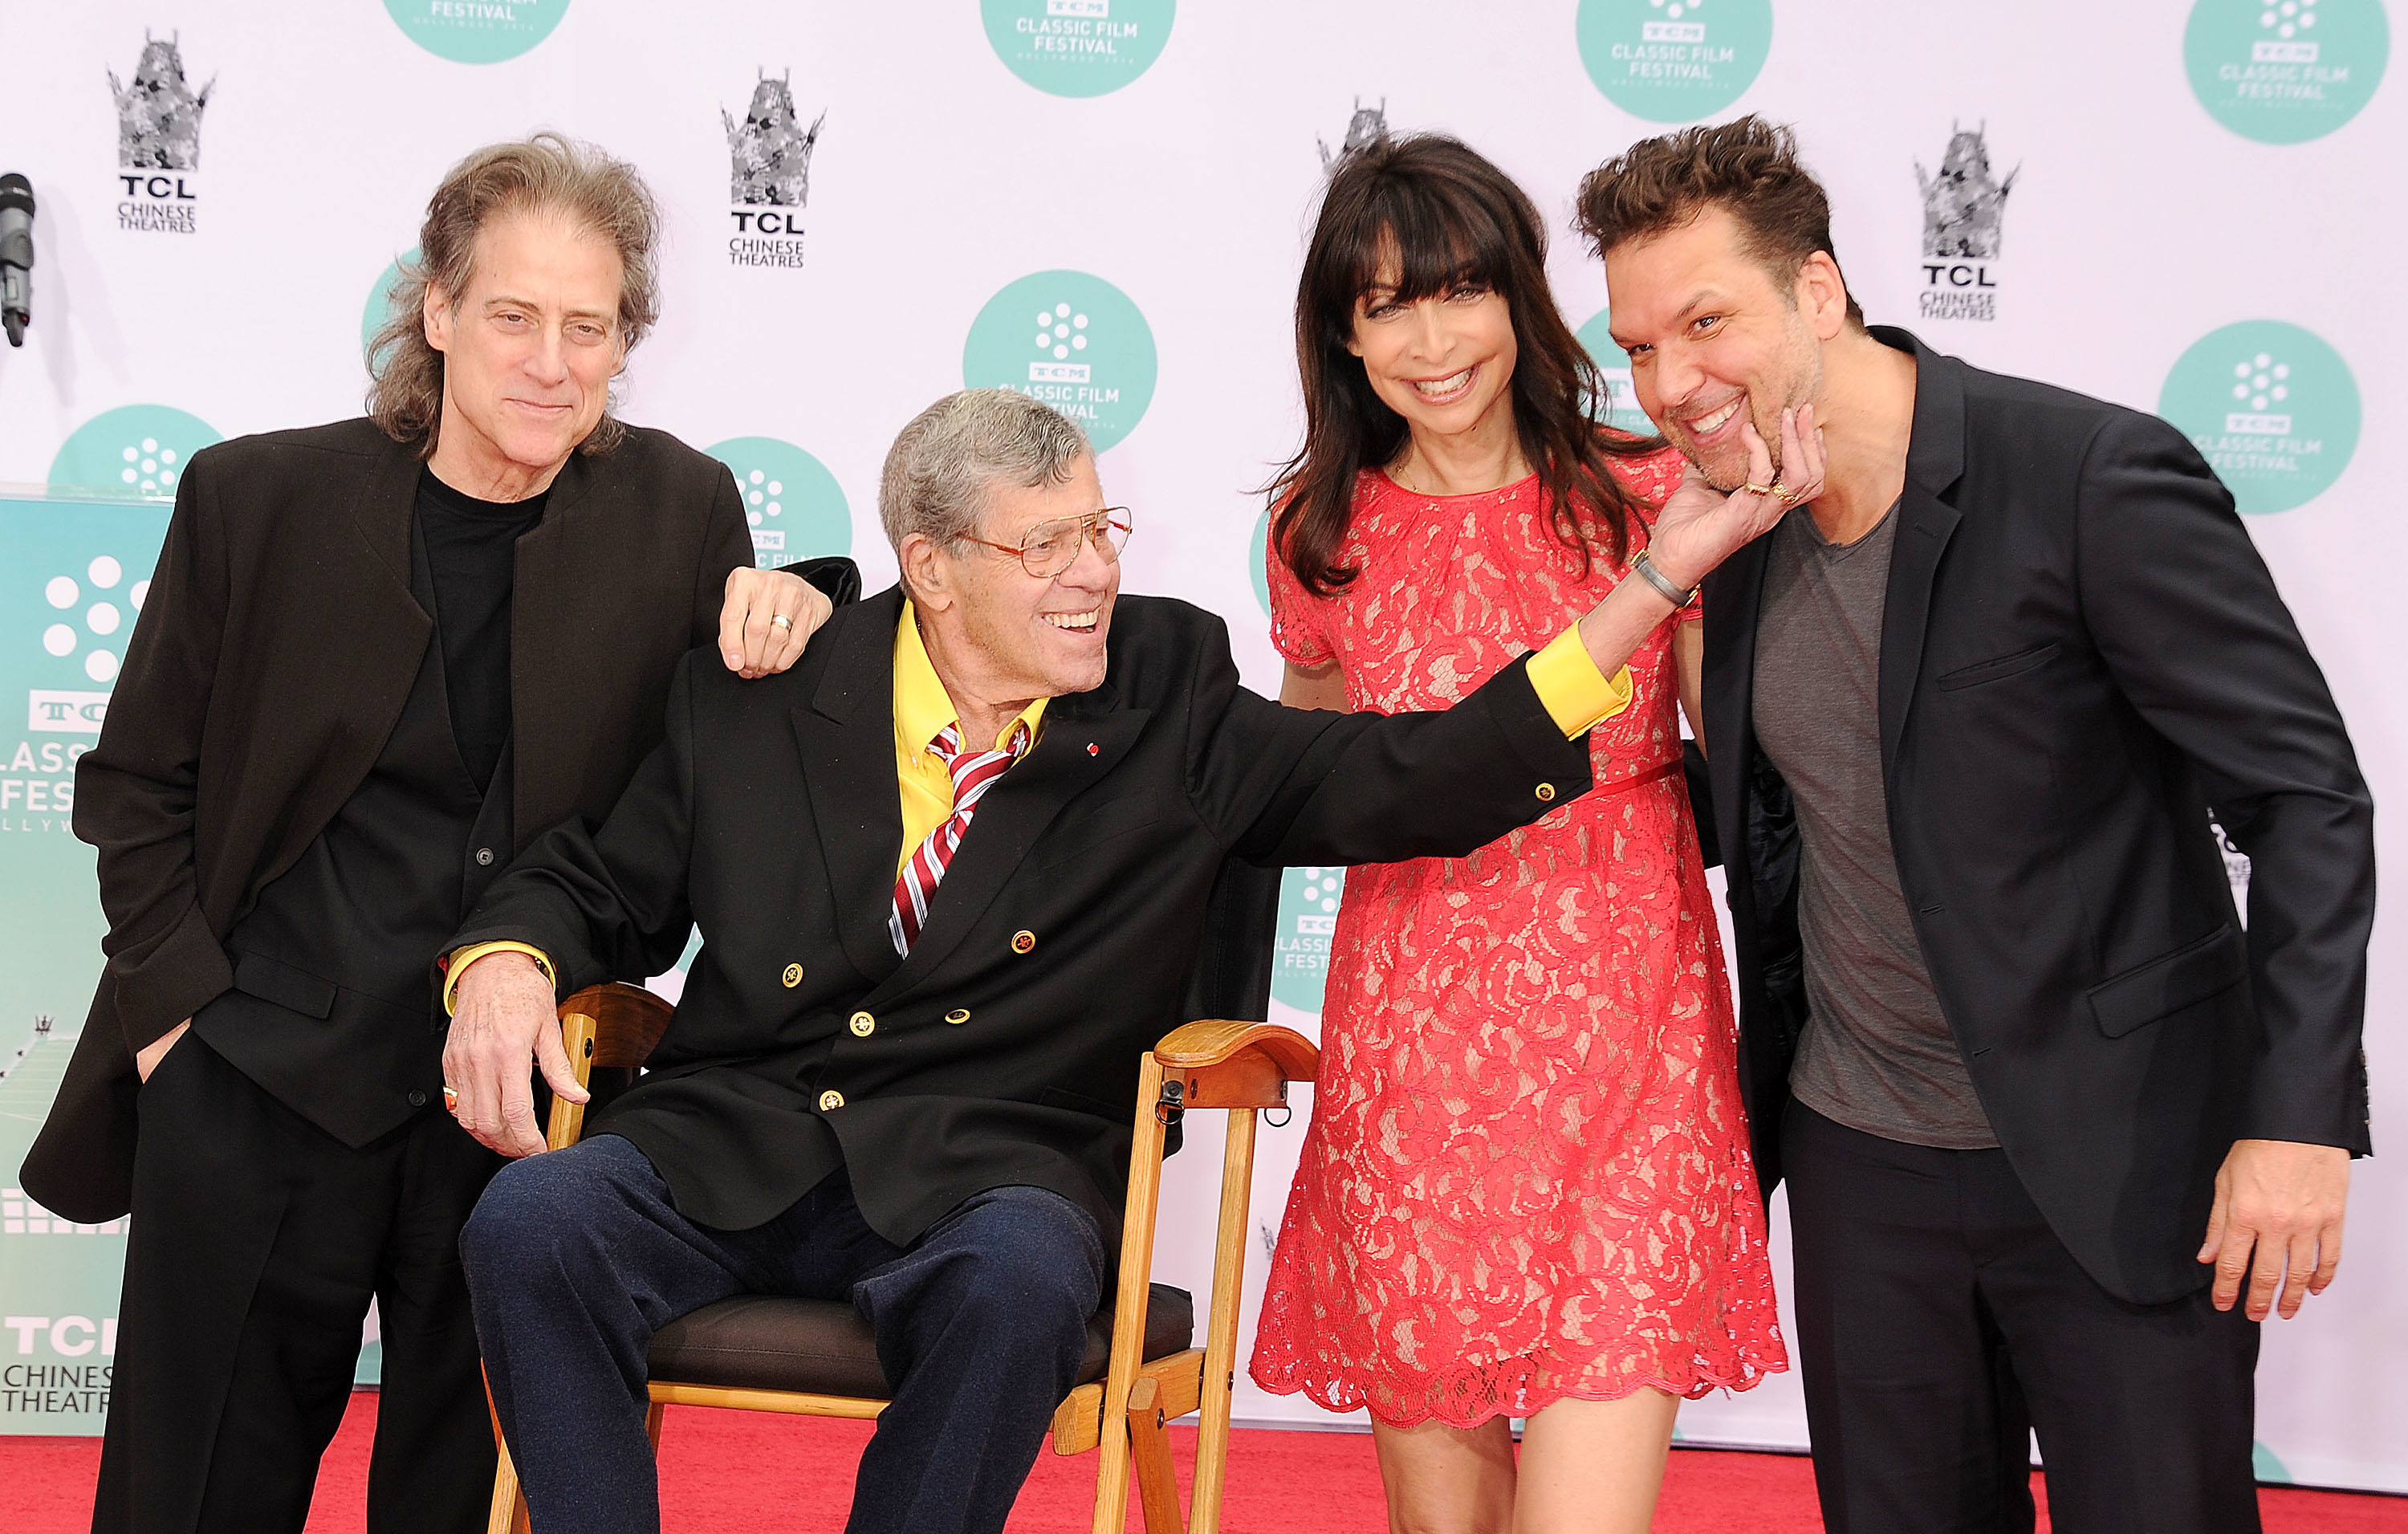 Richard Lewis, Jerry Lewis, Illeana Douglas and Dane Cook attend the Jerry Lewis handprint ceremony in Los Angeles, Calif., on April 12, 2014.